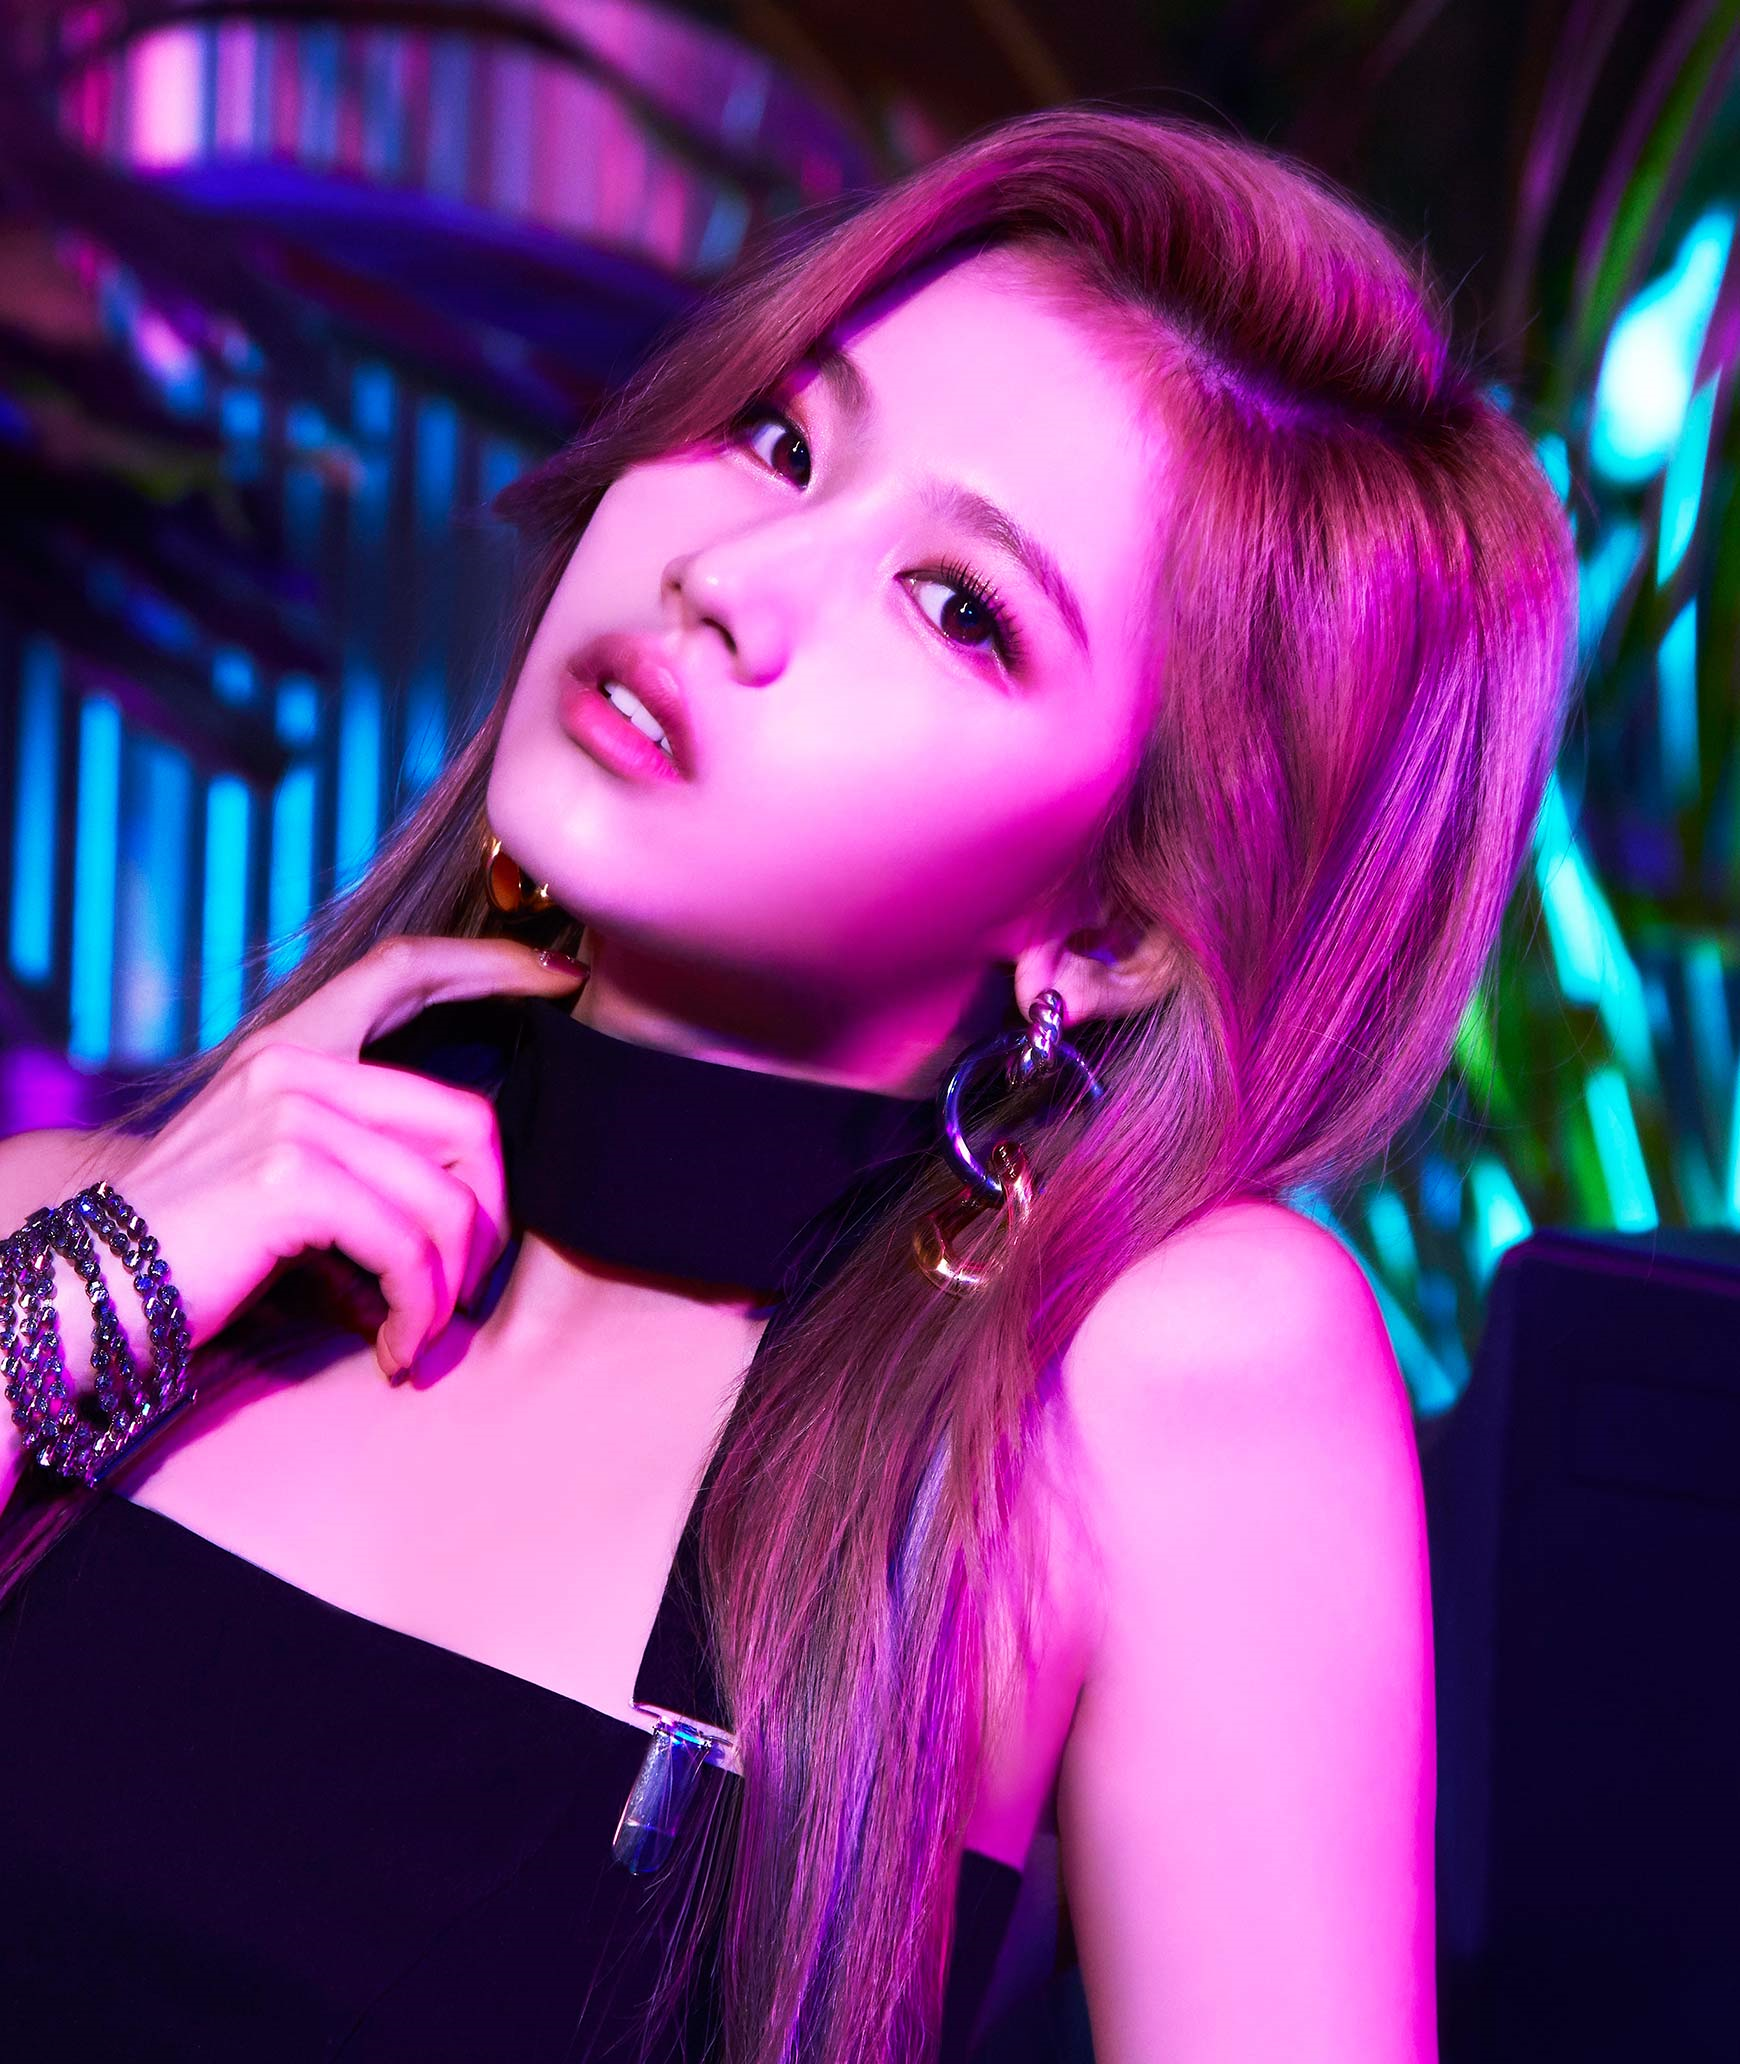 Sana | Kpop Wiki | FANDOM powered by Wikia